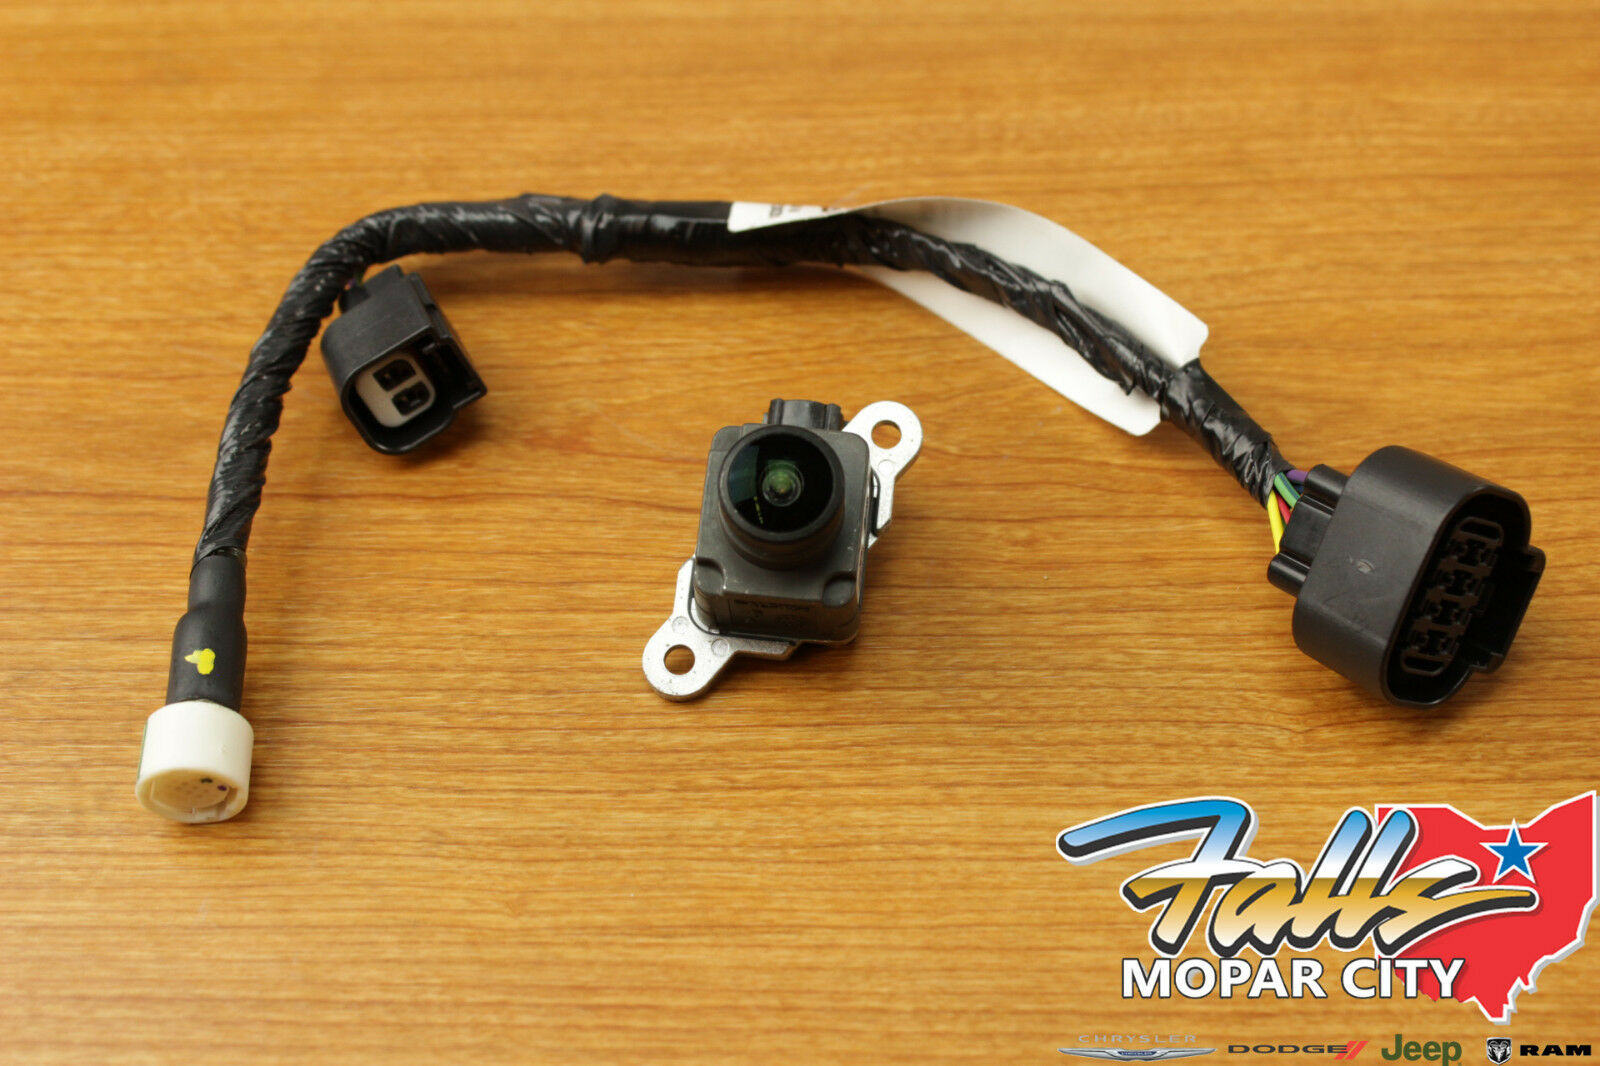 2013 2017 dodge ram 1500 2500 3500 rear view camera wire harness kit mopar oem [ 1600 x 1066 Pixel ]